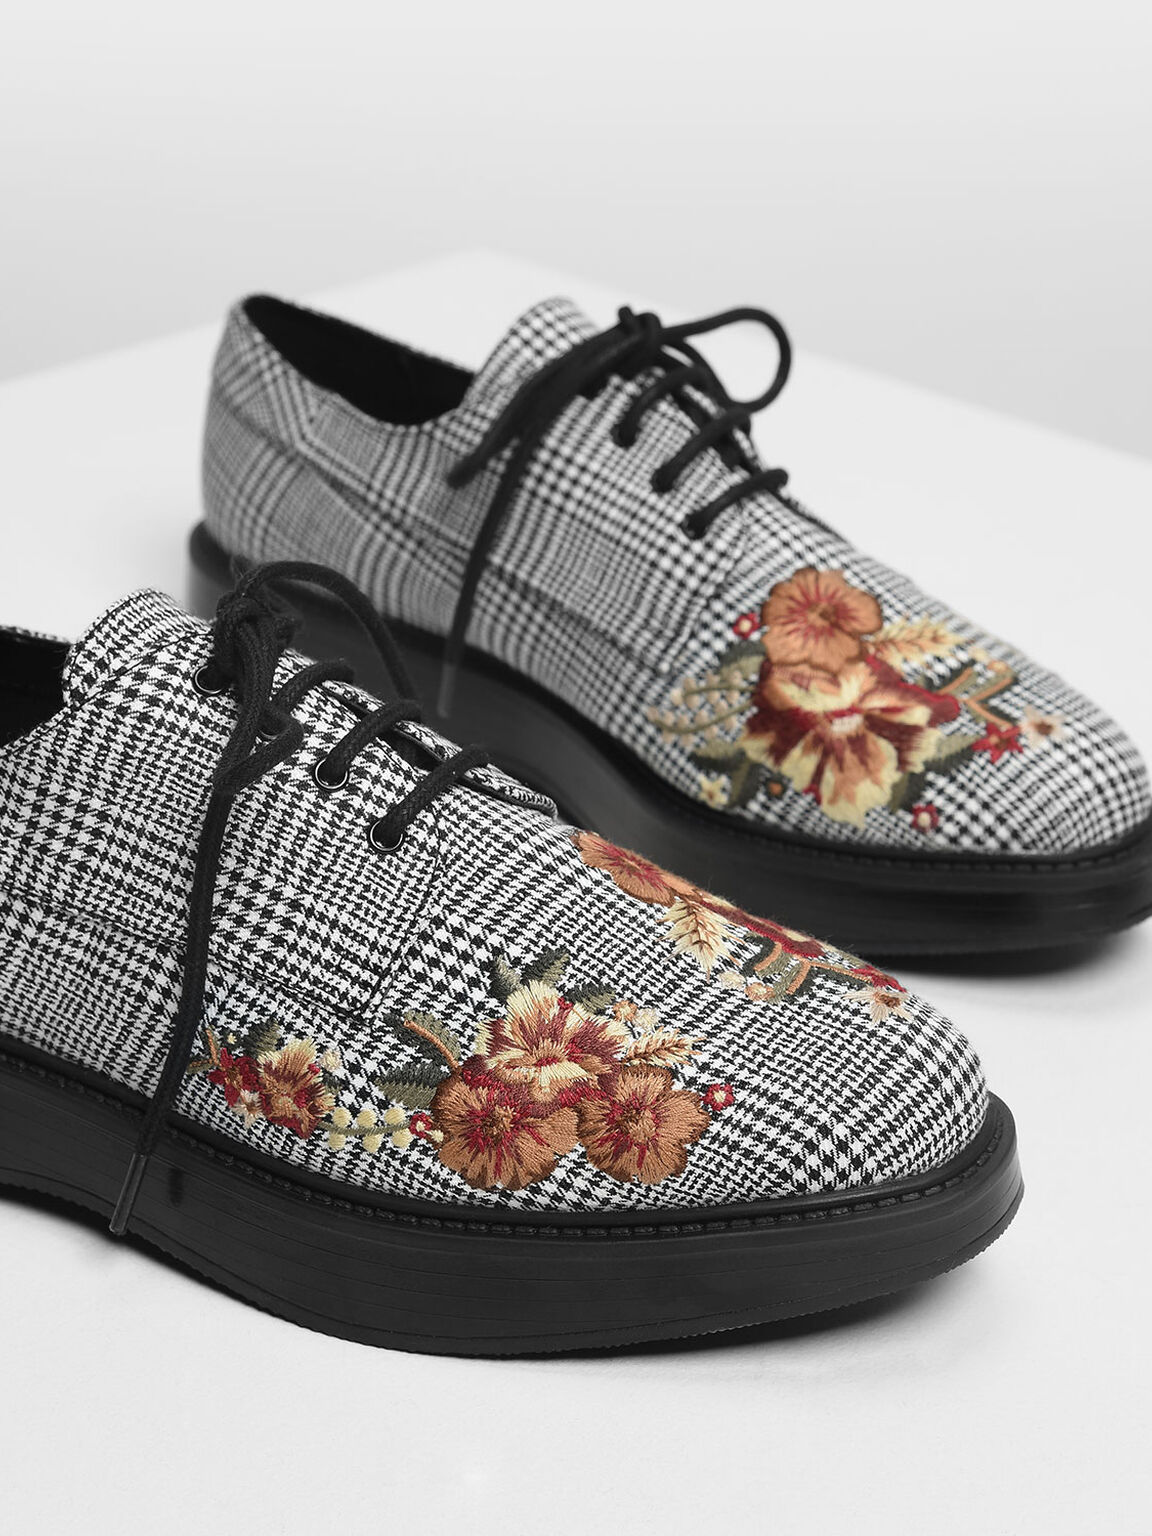 Floral Embroidery Derby Shoes, Multi, hi-res